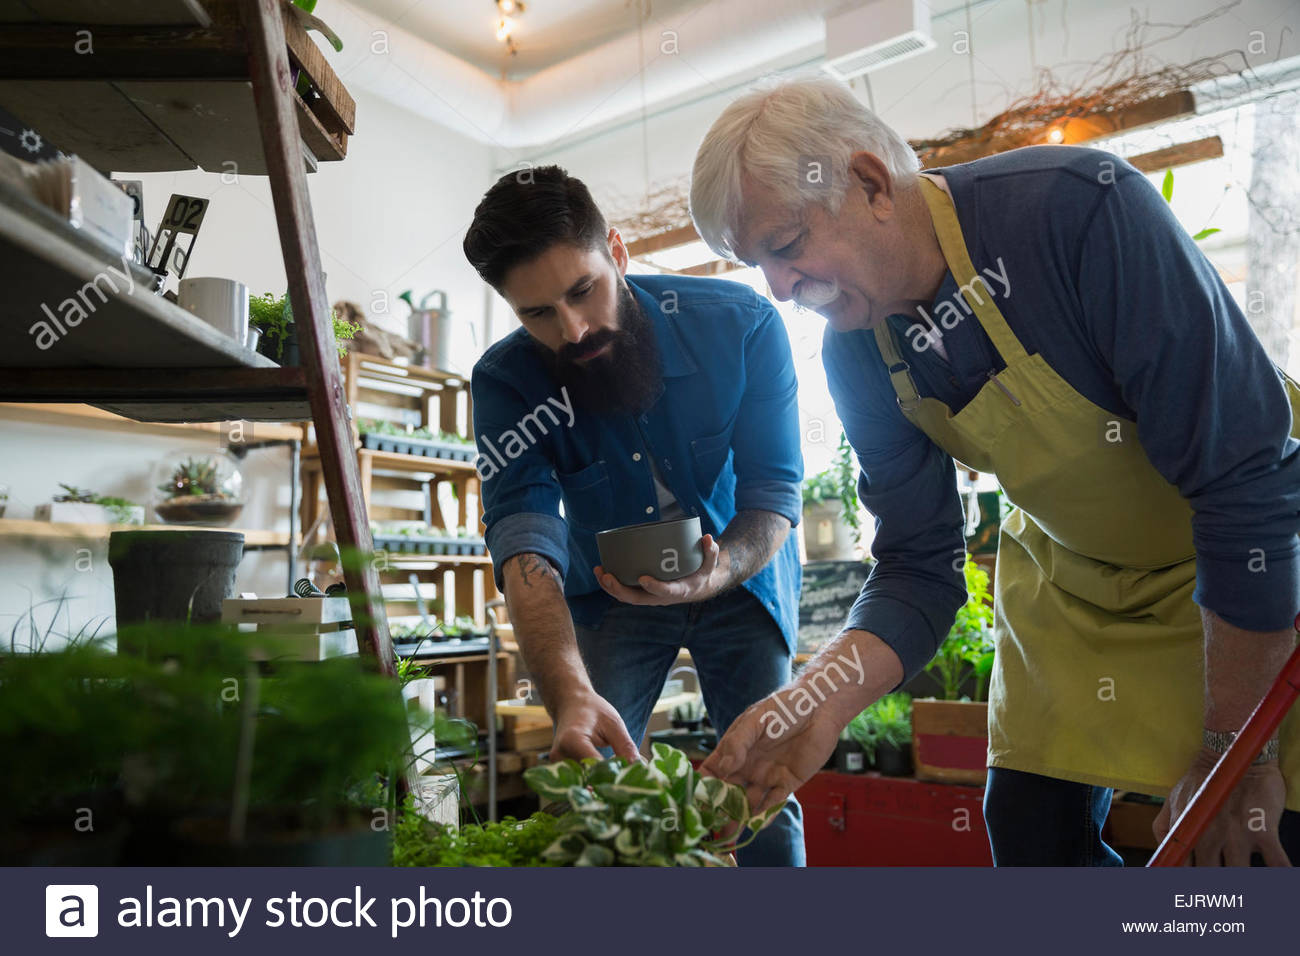 Terrarium shop owner helping customer with plants - Stock Image